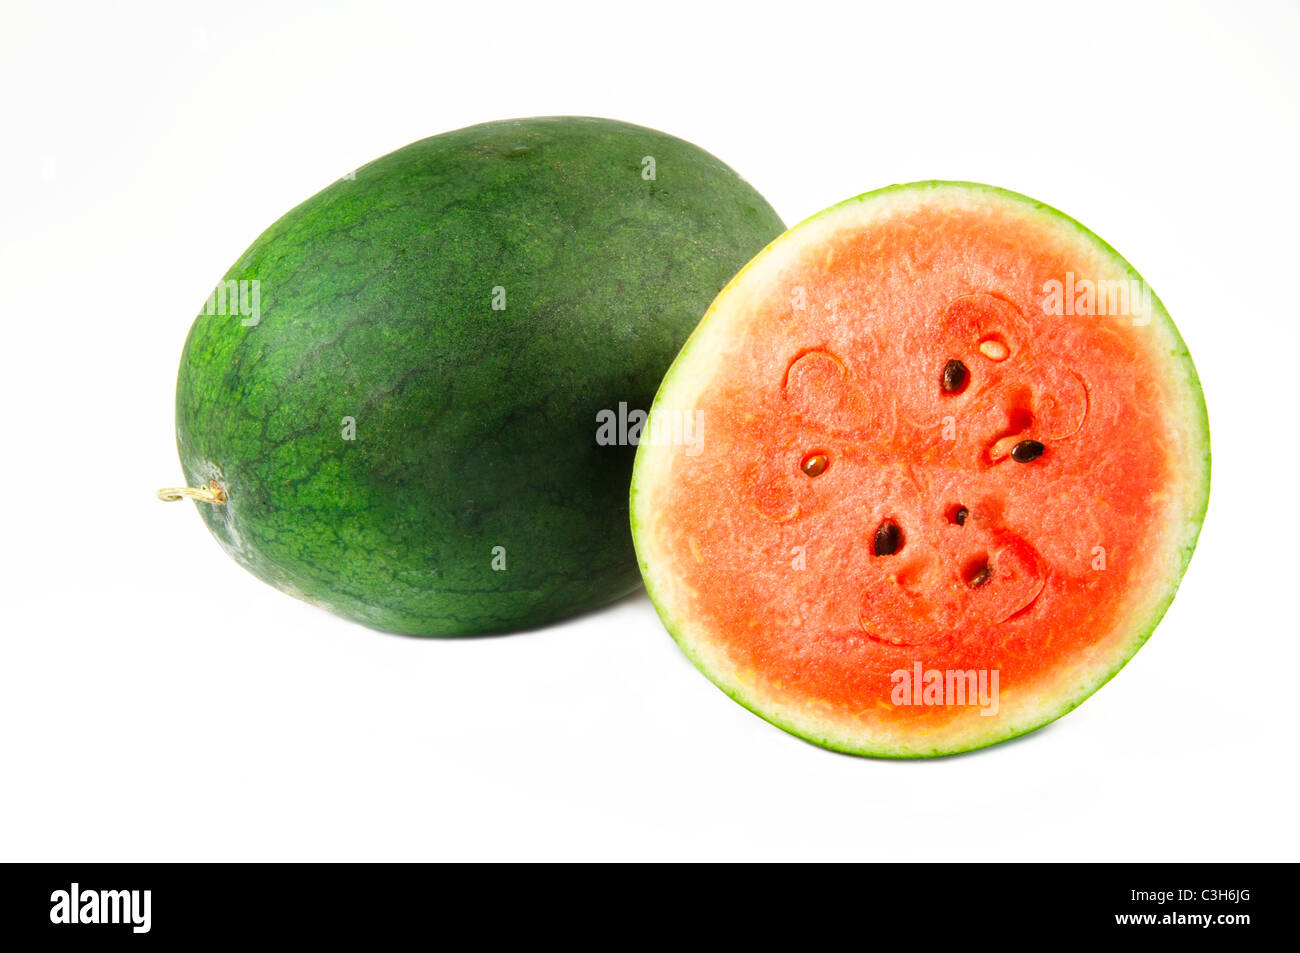 Watermelon on white background - Stock Image